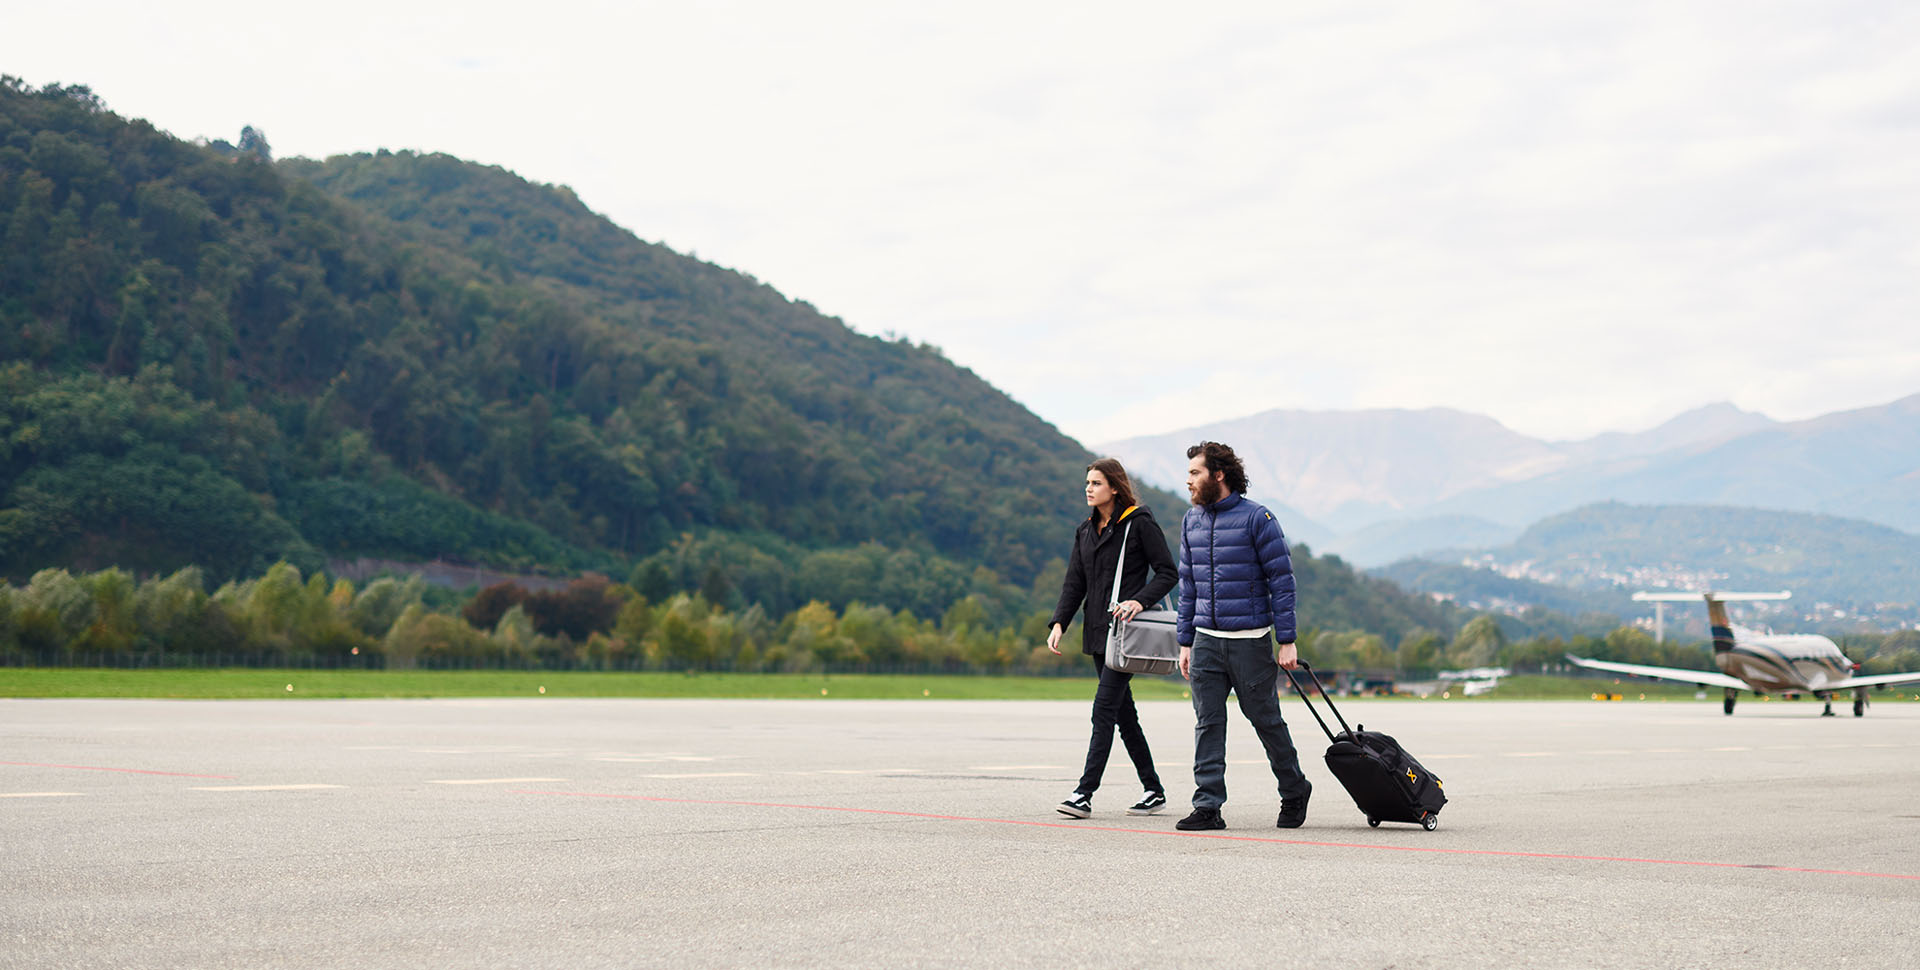 ProtoXtype: to always be comfortable while traveling, ProtoXtype